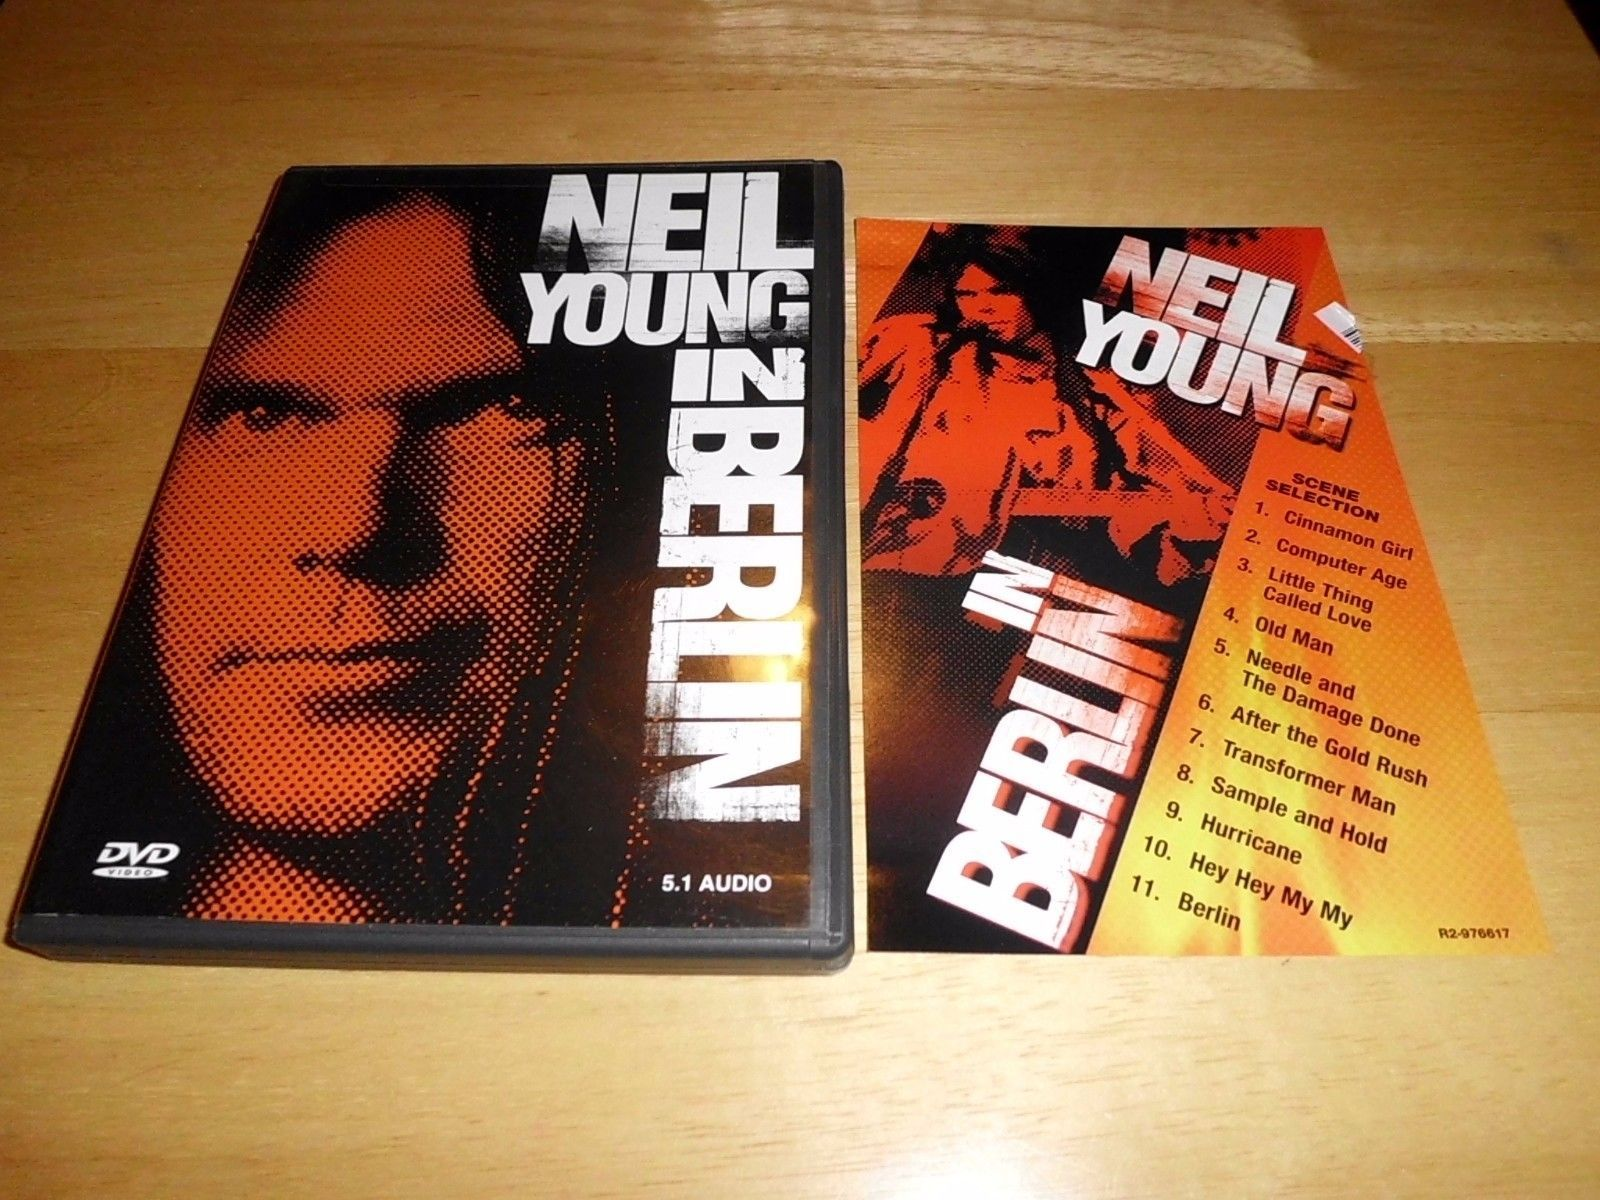 Neil Young In Berlin